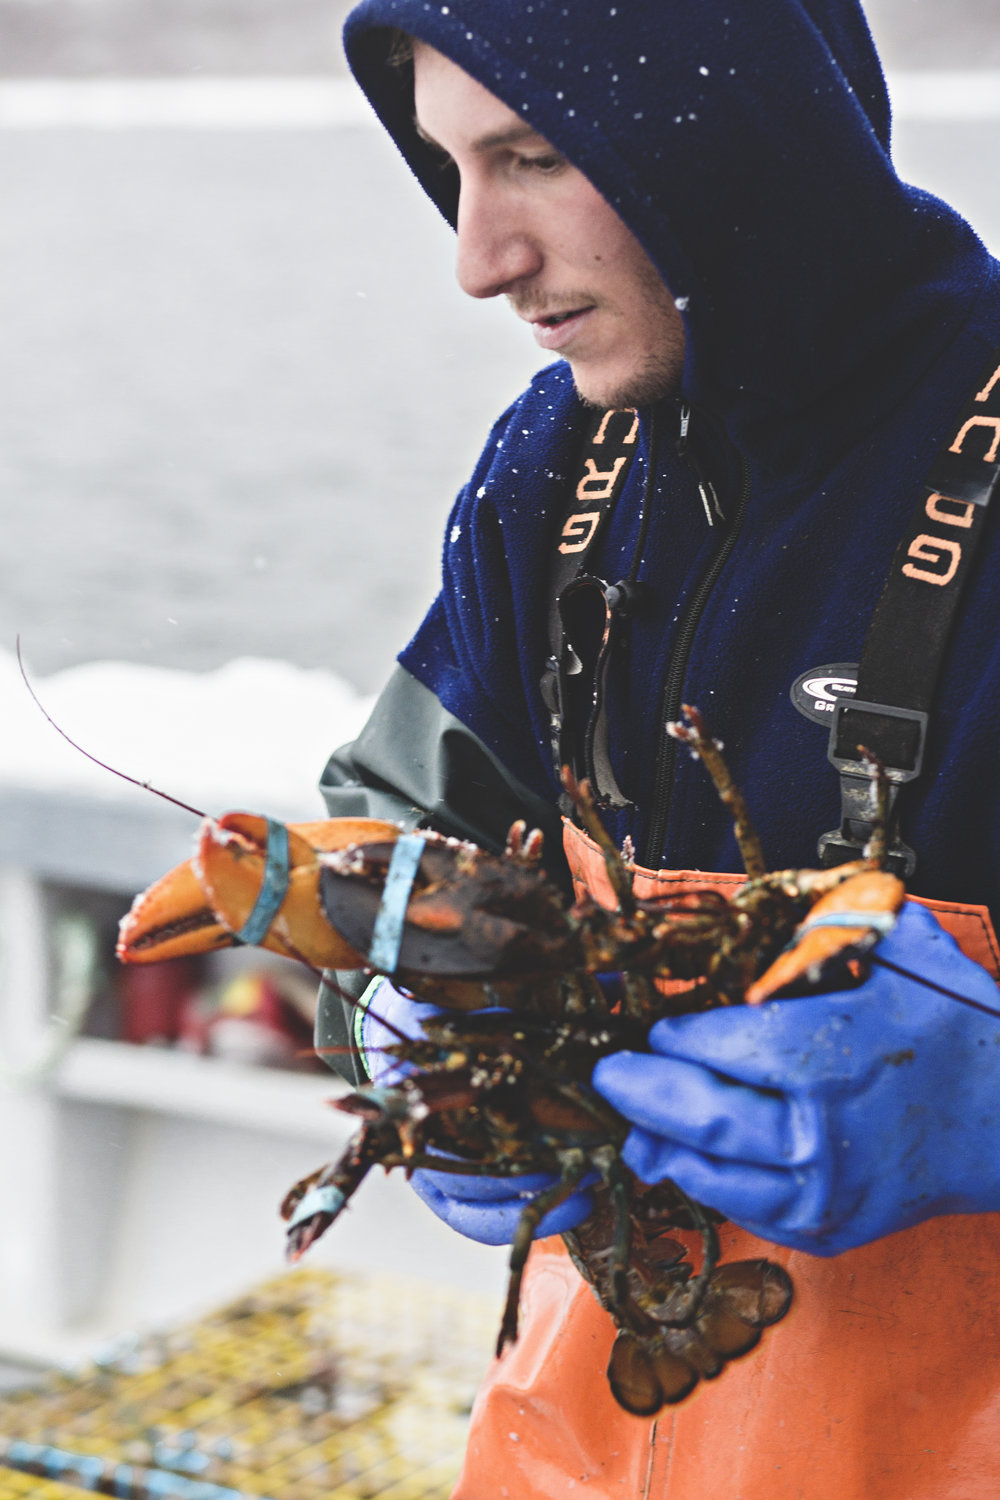 Lobster fishing in a snow storm.